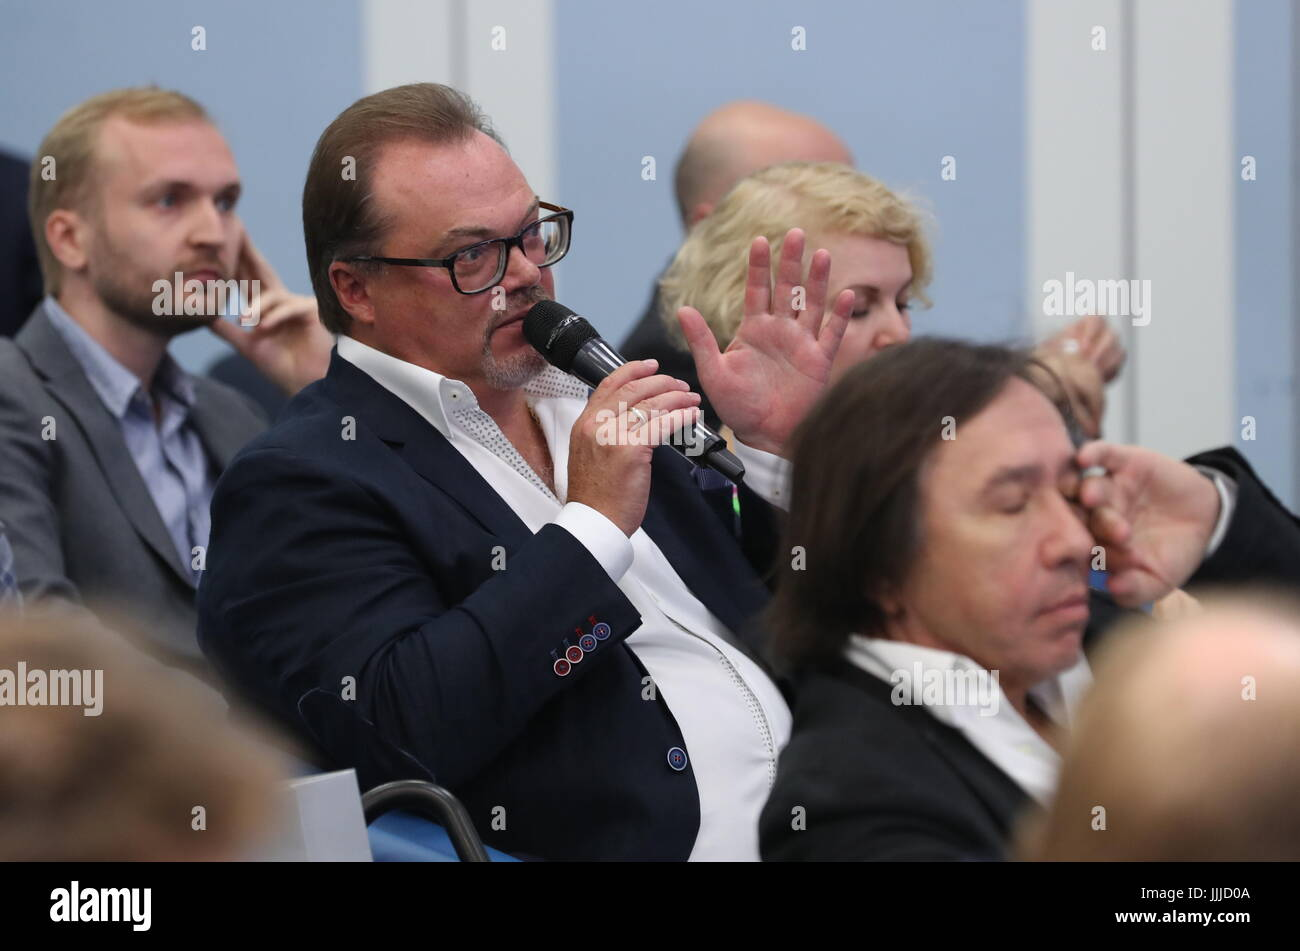 Moscow, Russia. 20th July, 2017. Karo-Premyer Film Company General Director Alexei Ryazantsev (C) during a presentational - Stock Image